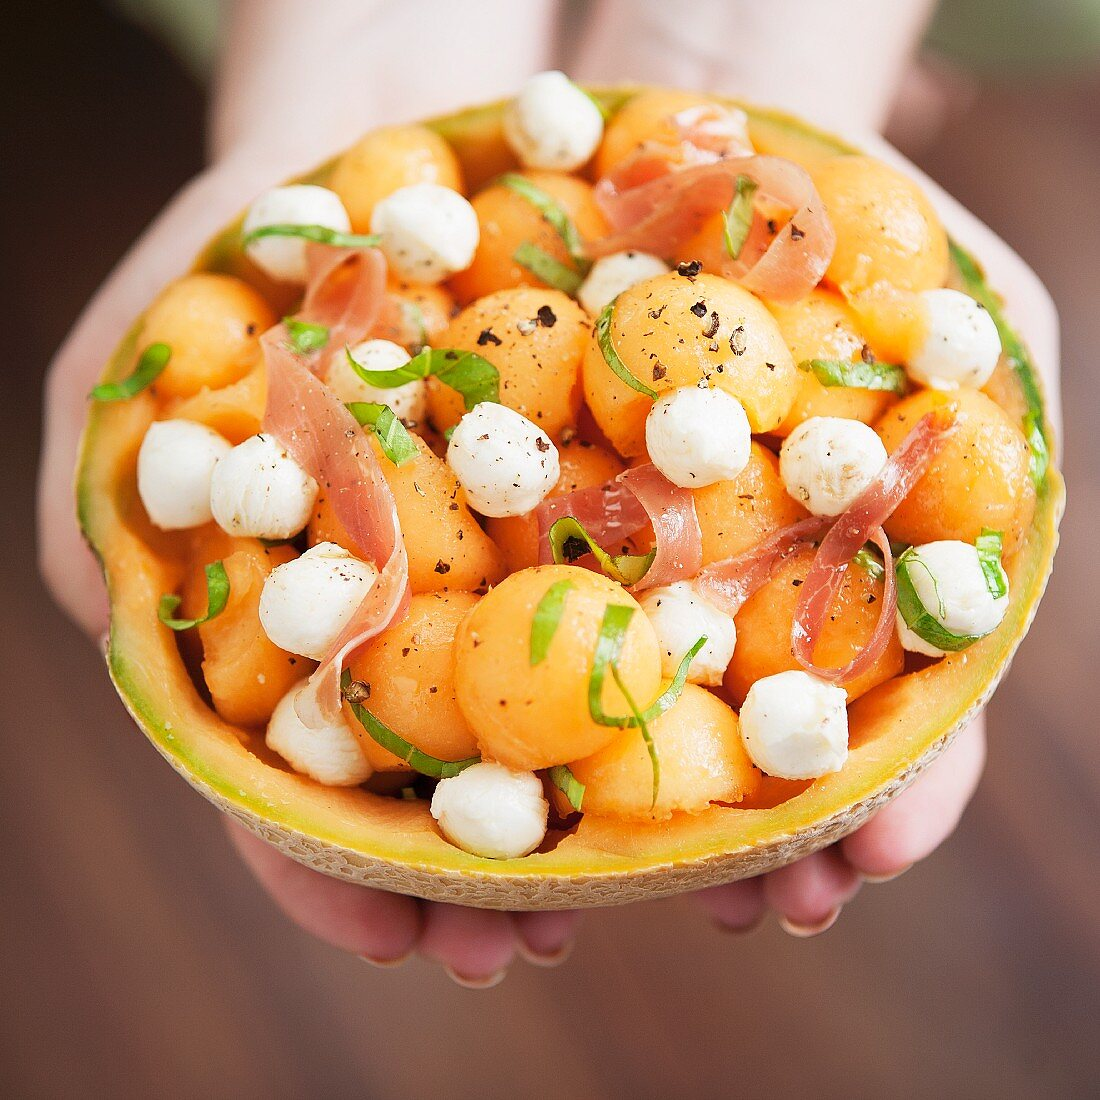 Melon salad with mozzarella and proscuitto in a hollowed-out melon